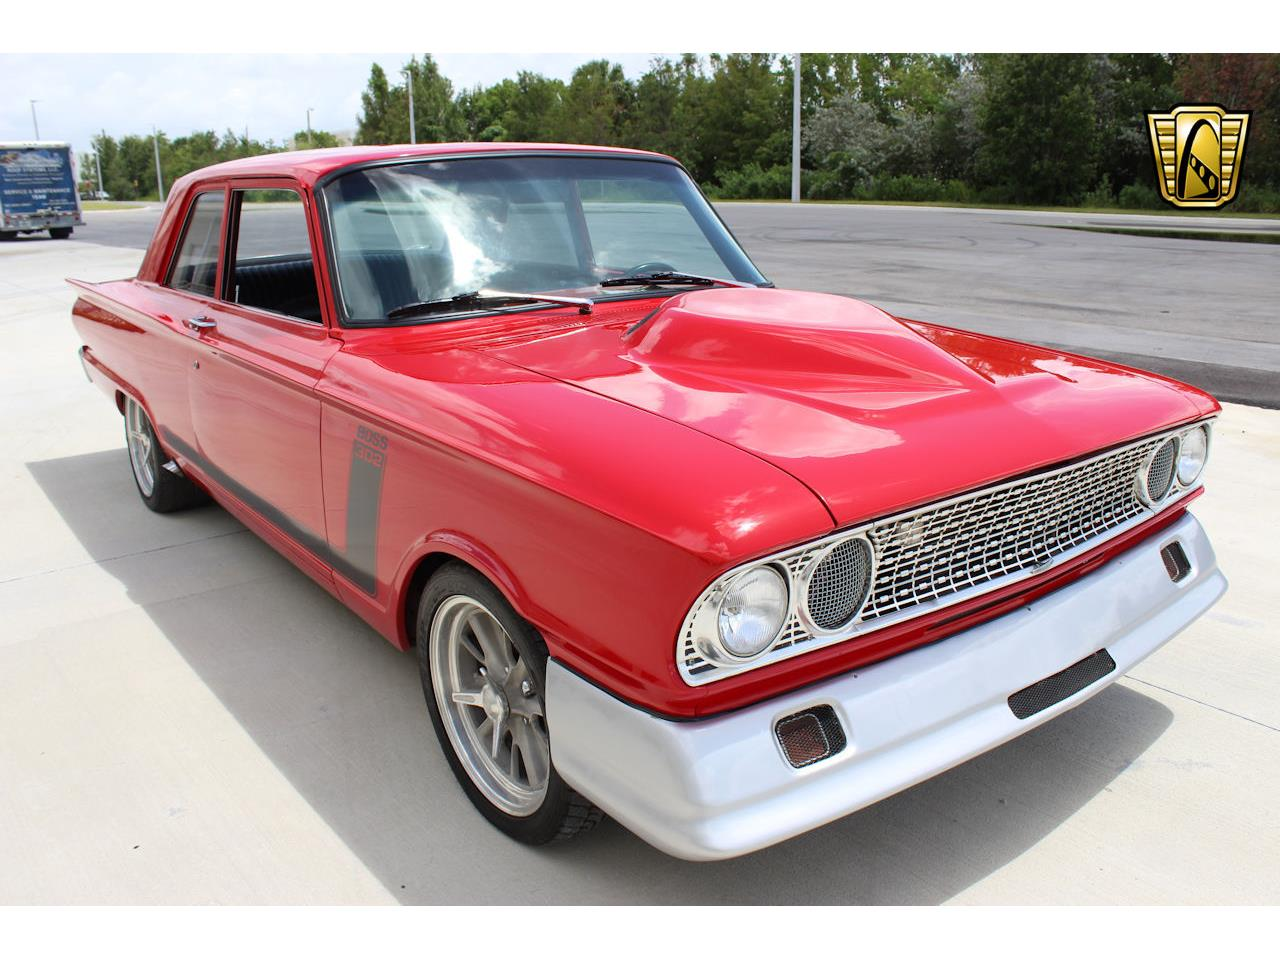 Large Picture of Classic 1963 Ford Fairlane located in Coral Springs Florida - $27,595.00 Offered by Gateway Classic Cars - Fort Lauderdale - MSBB